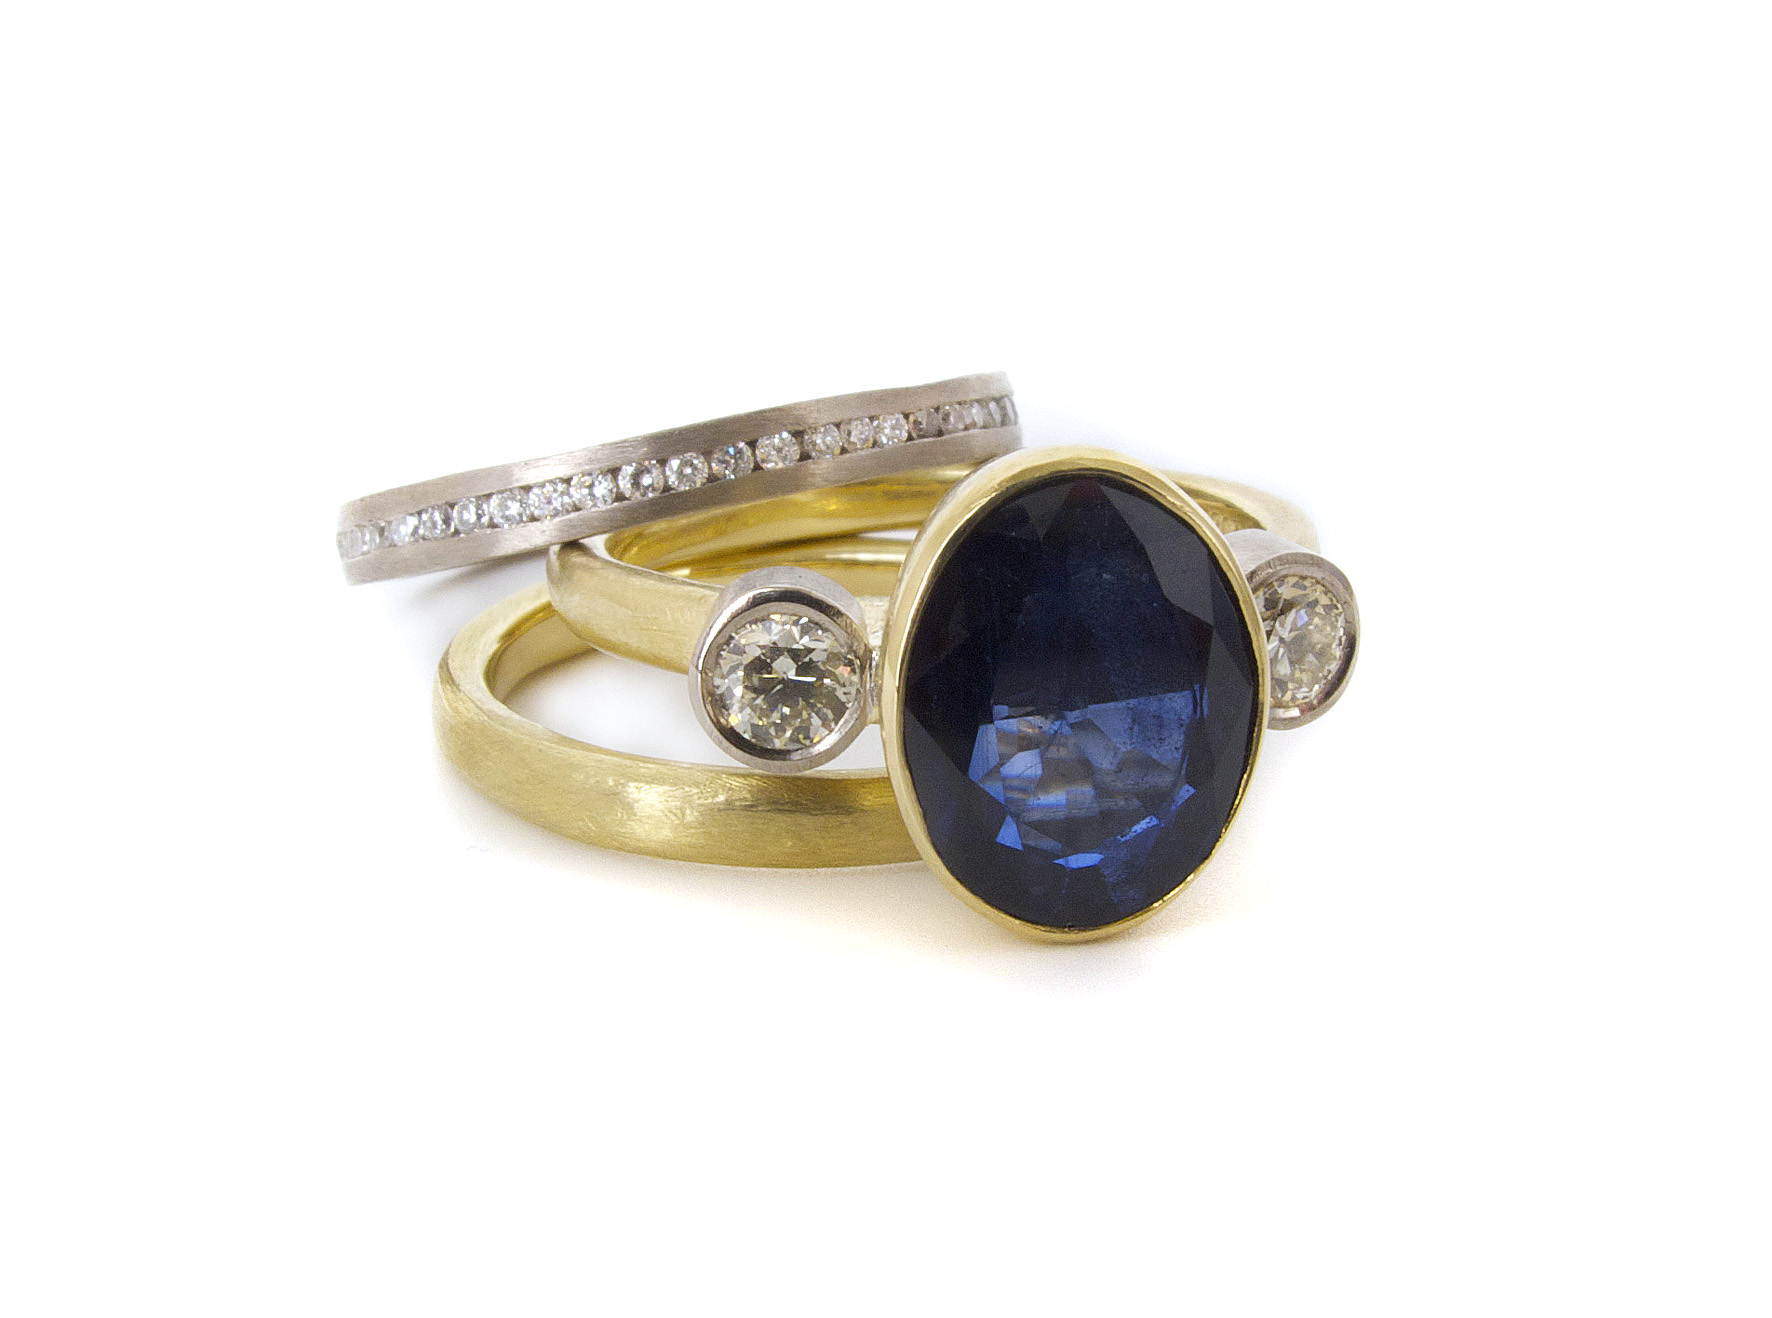 This remake of an engagement ring with the customer's own oval sapphire and diamonds into a beautiful new trilogy engagement ring completed with wedding band and diamond eternity band. All 18ct white & yellow gold, with a soft organic textured look to the bands.